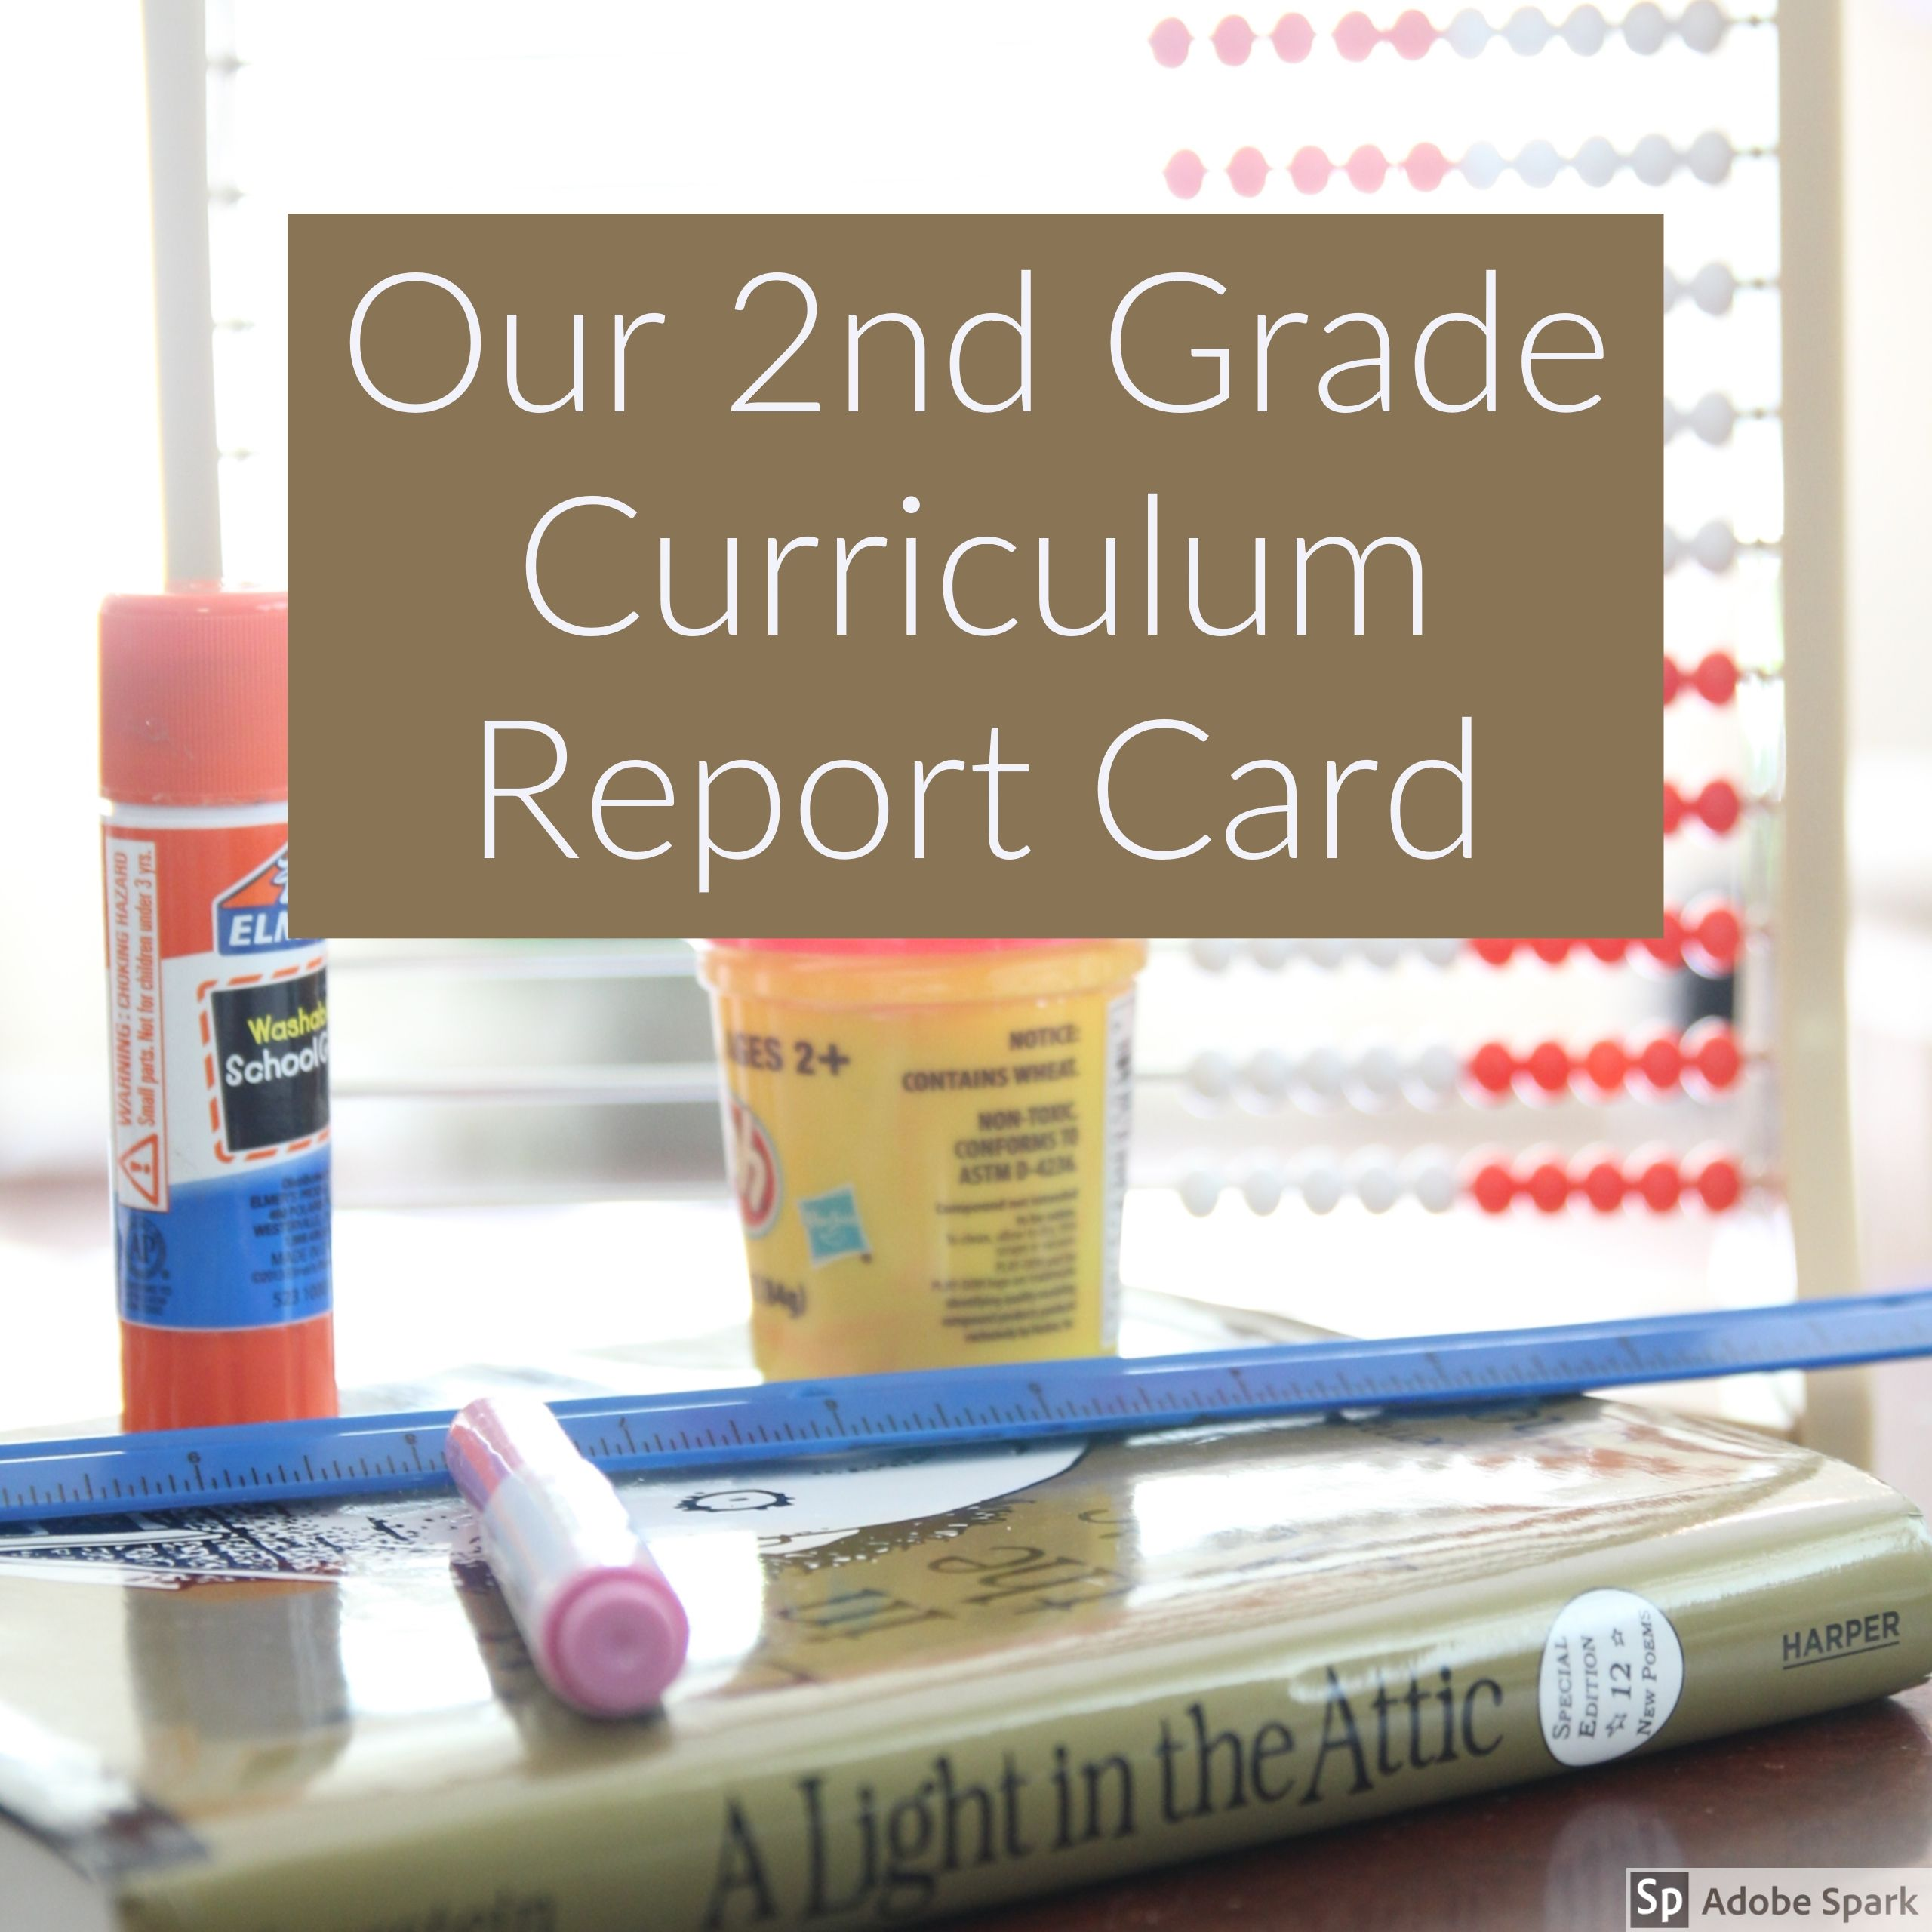 Review Of All The Curriculum We Used In 2nd Grade Secular Homeschool Curriculum Homeschool Apps Secular Homeschool Curriculum [ 2560 x 2560 Pixel ]